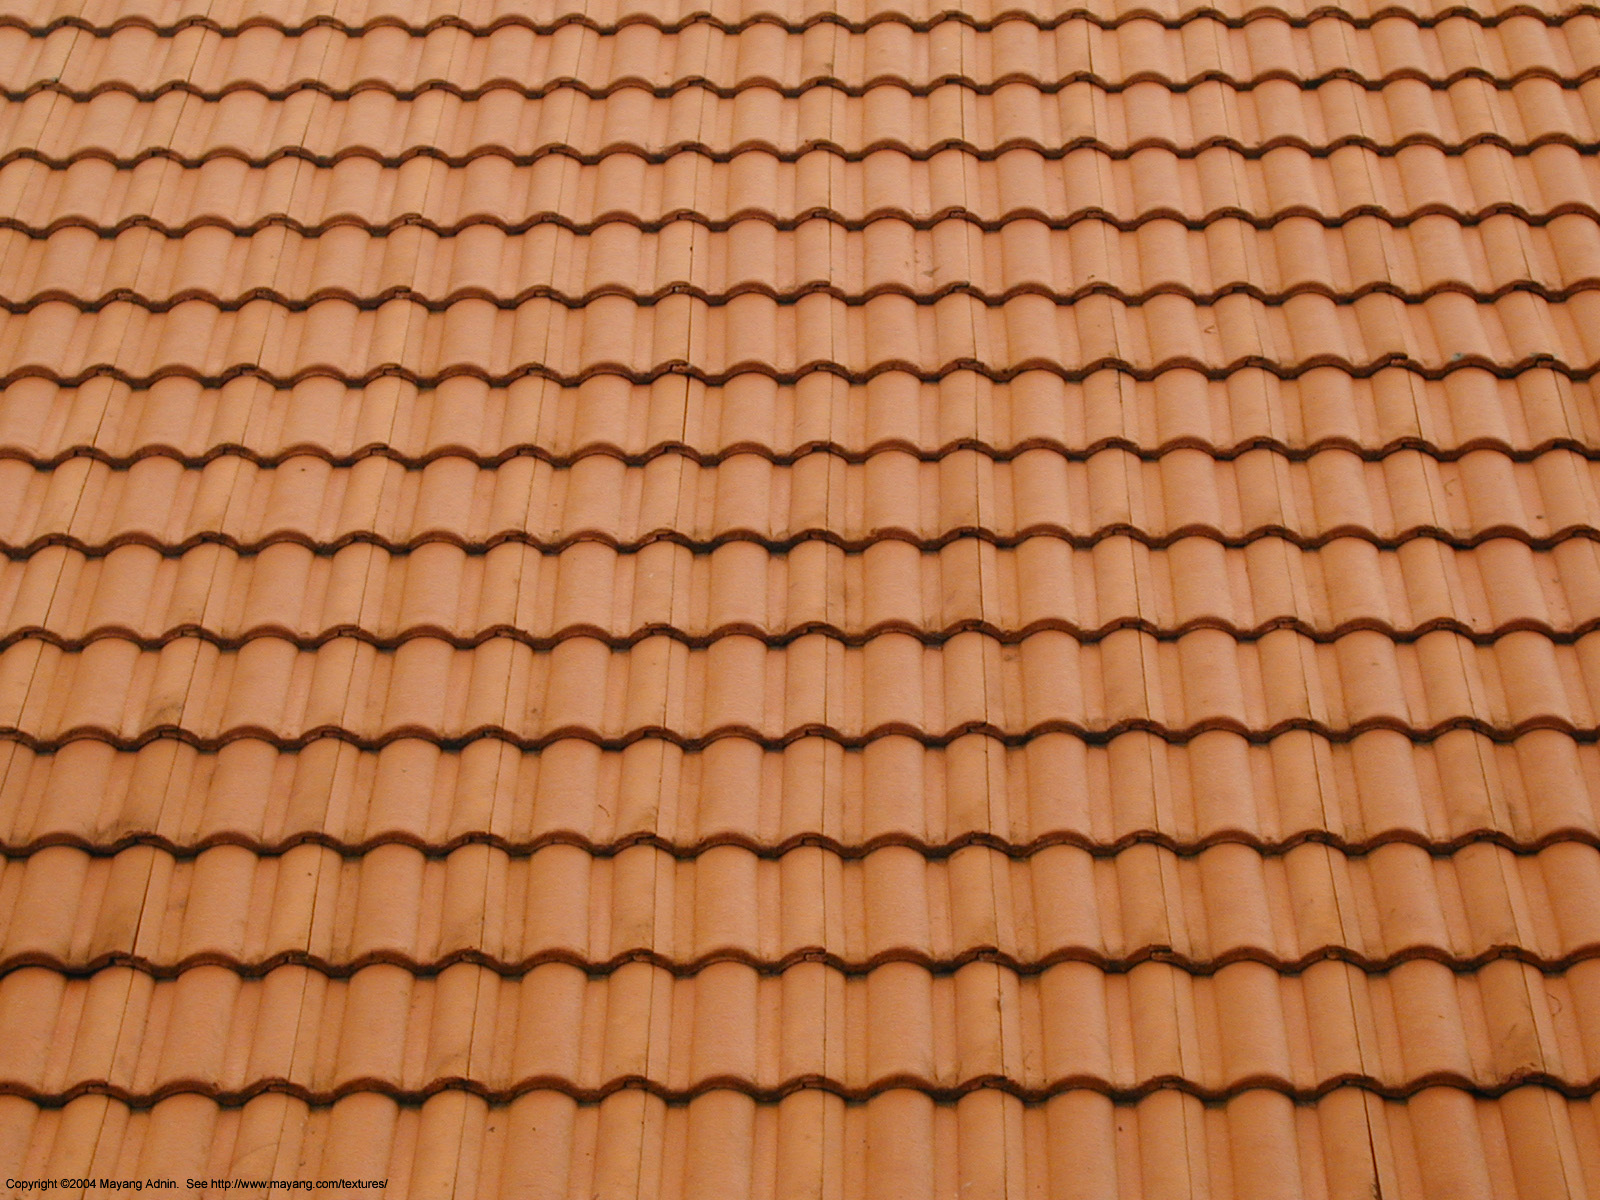 Http Myh0medesign Blogspot Com 2012 05 Roof Tiles Html